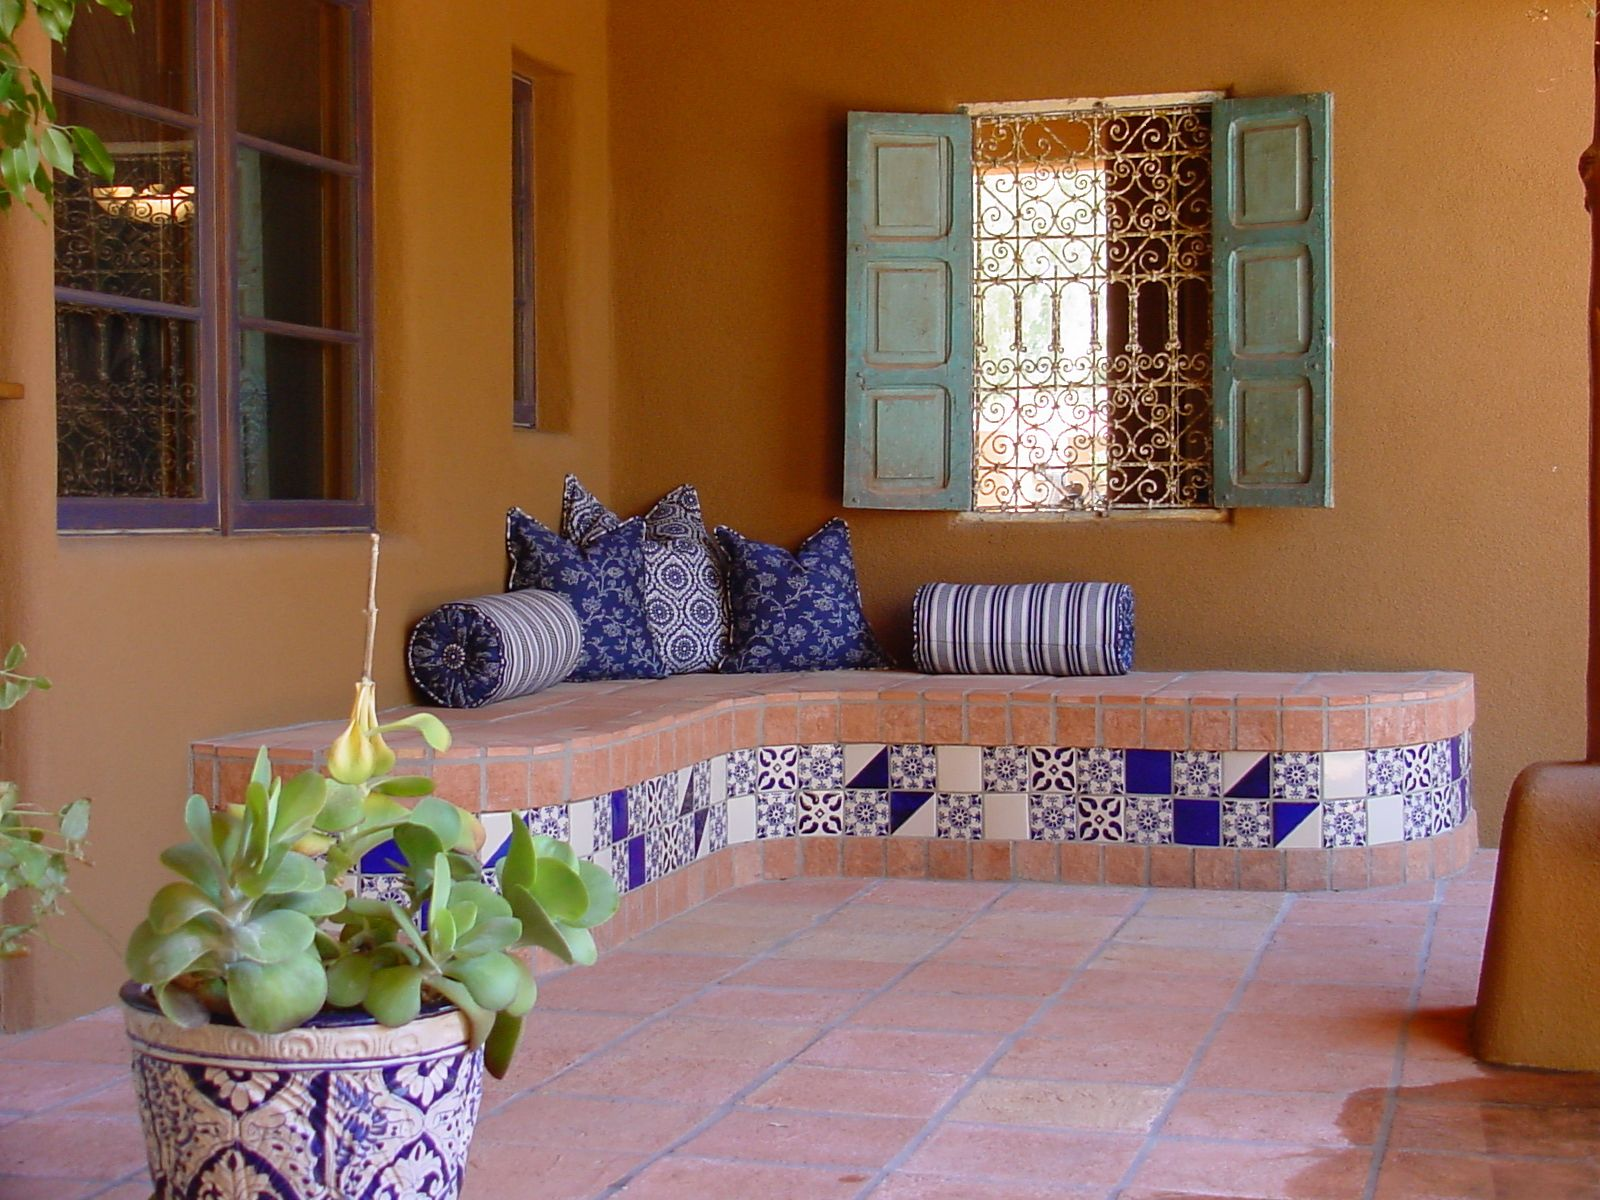 Pin by Gregg Wolff on For the Home | Mexican home decor ... on Mexican Patio Ideas id=23352